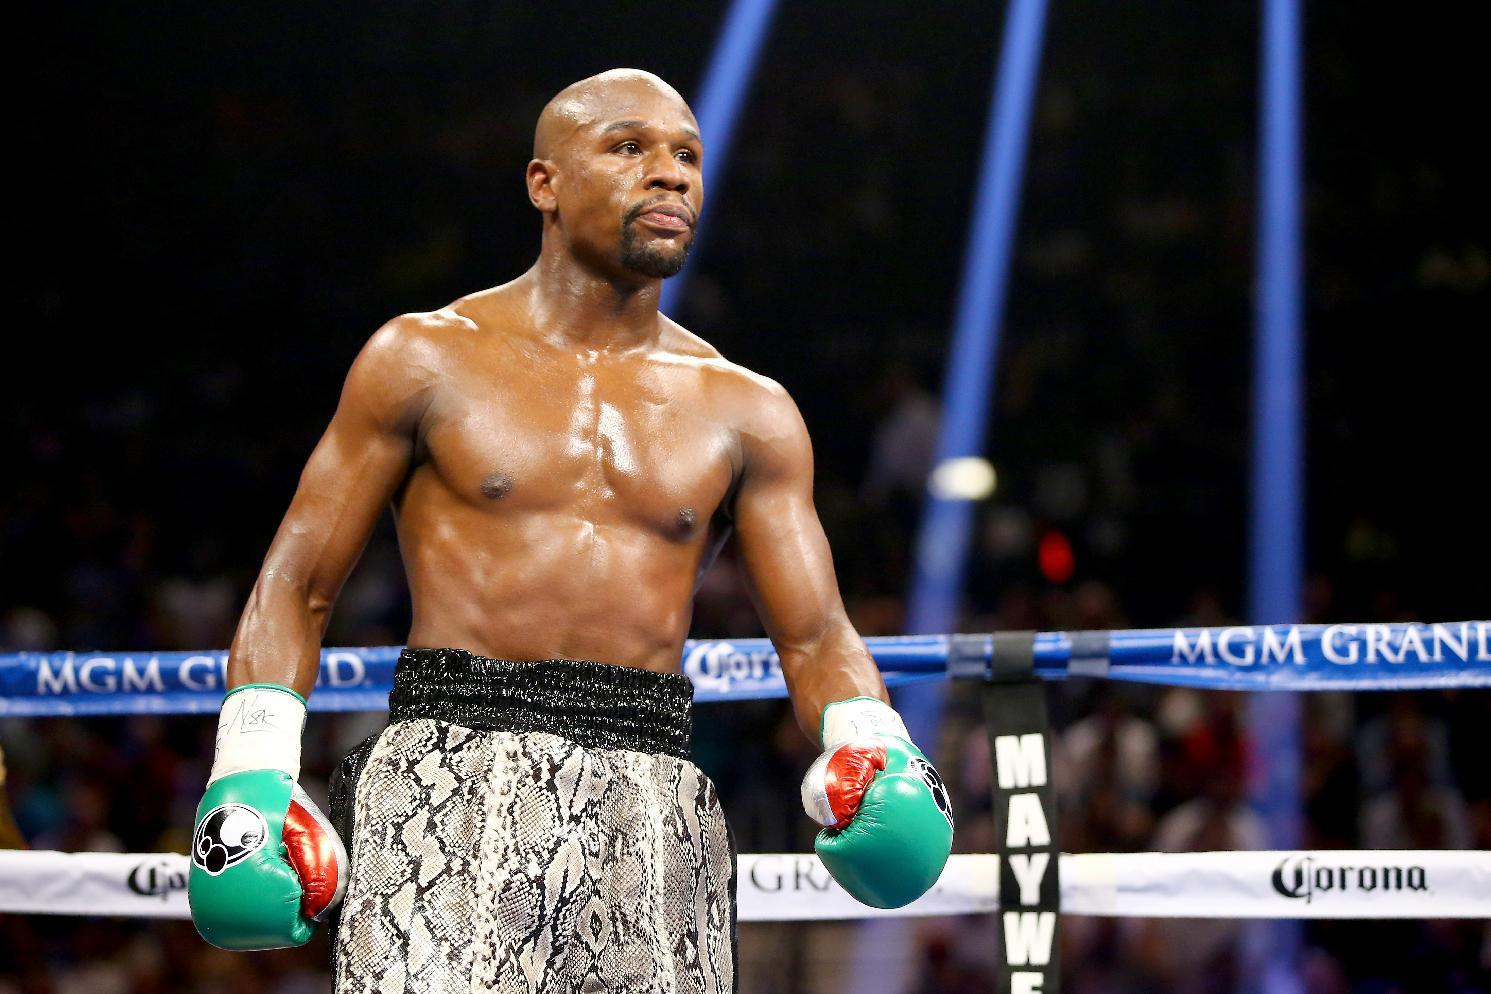 Mayweather dampens hopes for Pacquiao fight